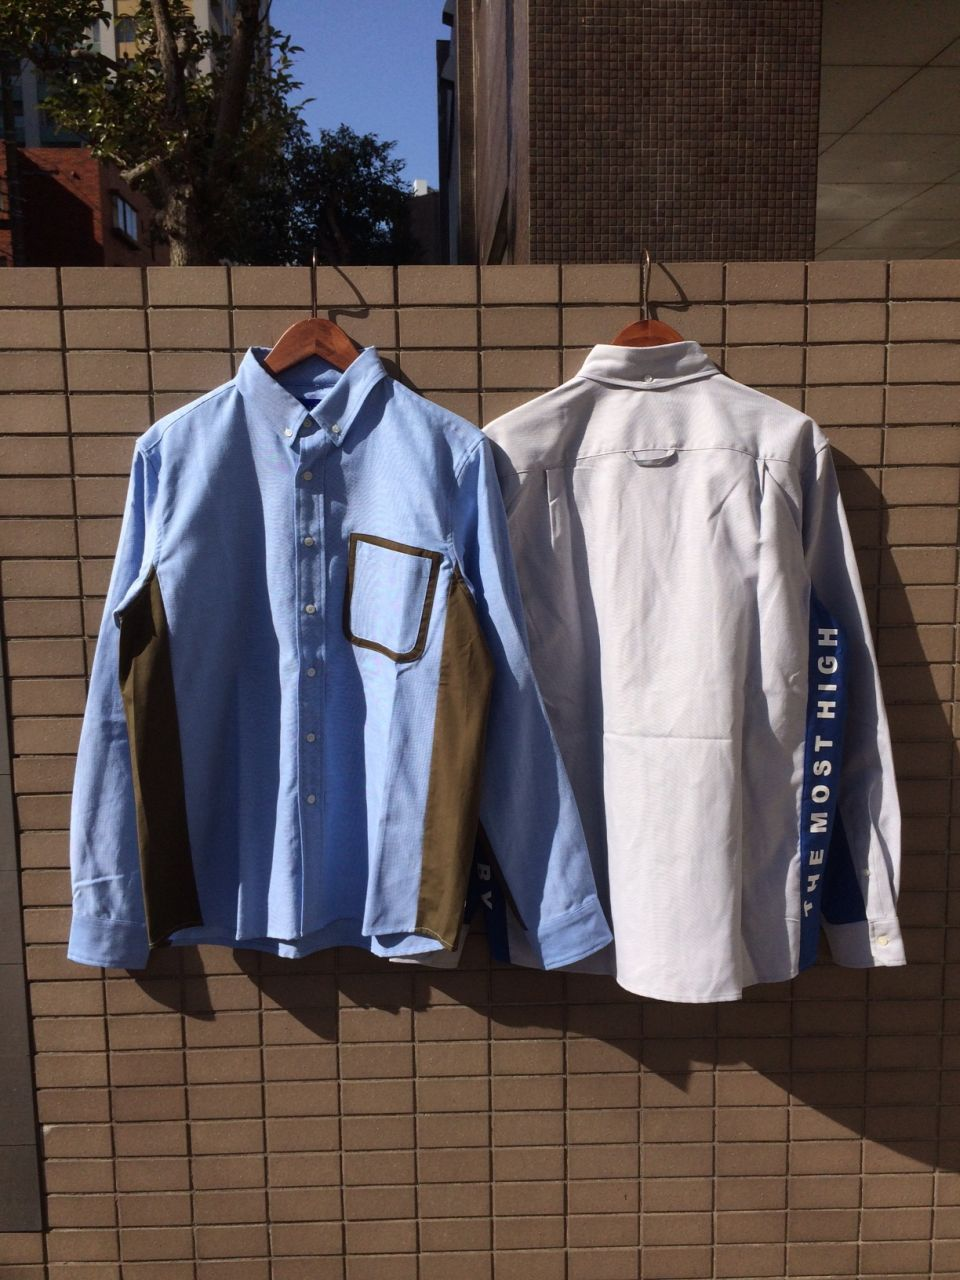 2/9 NEW ARRIVAL ITEMS